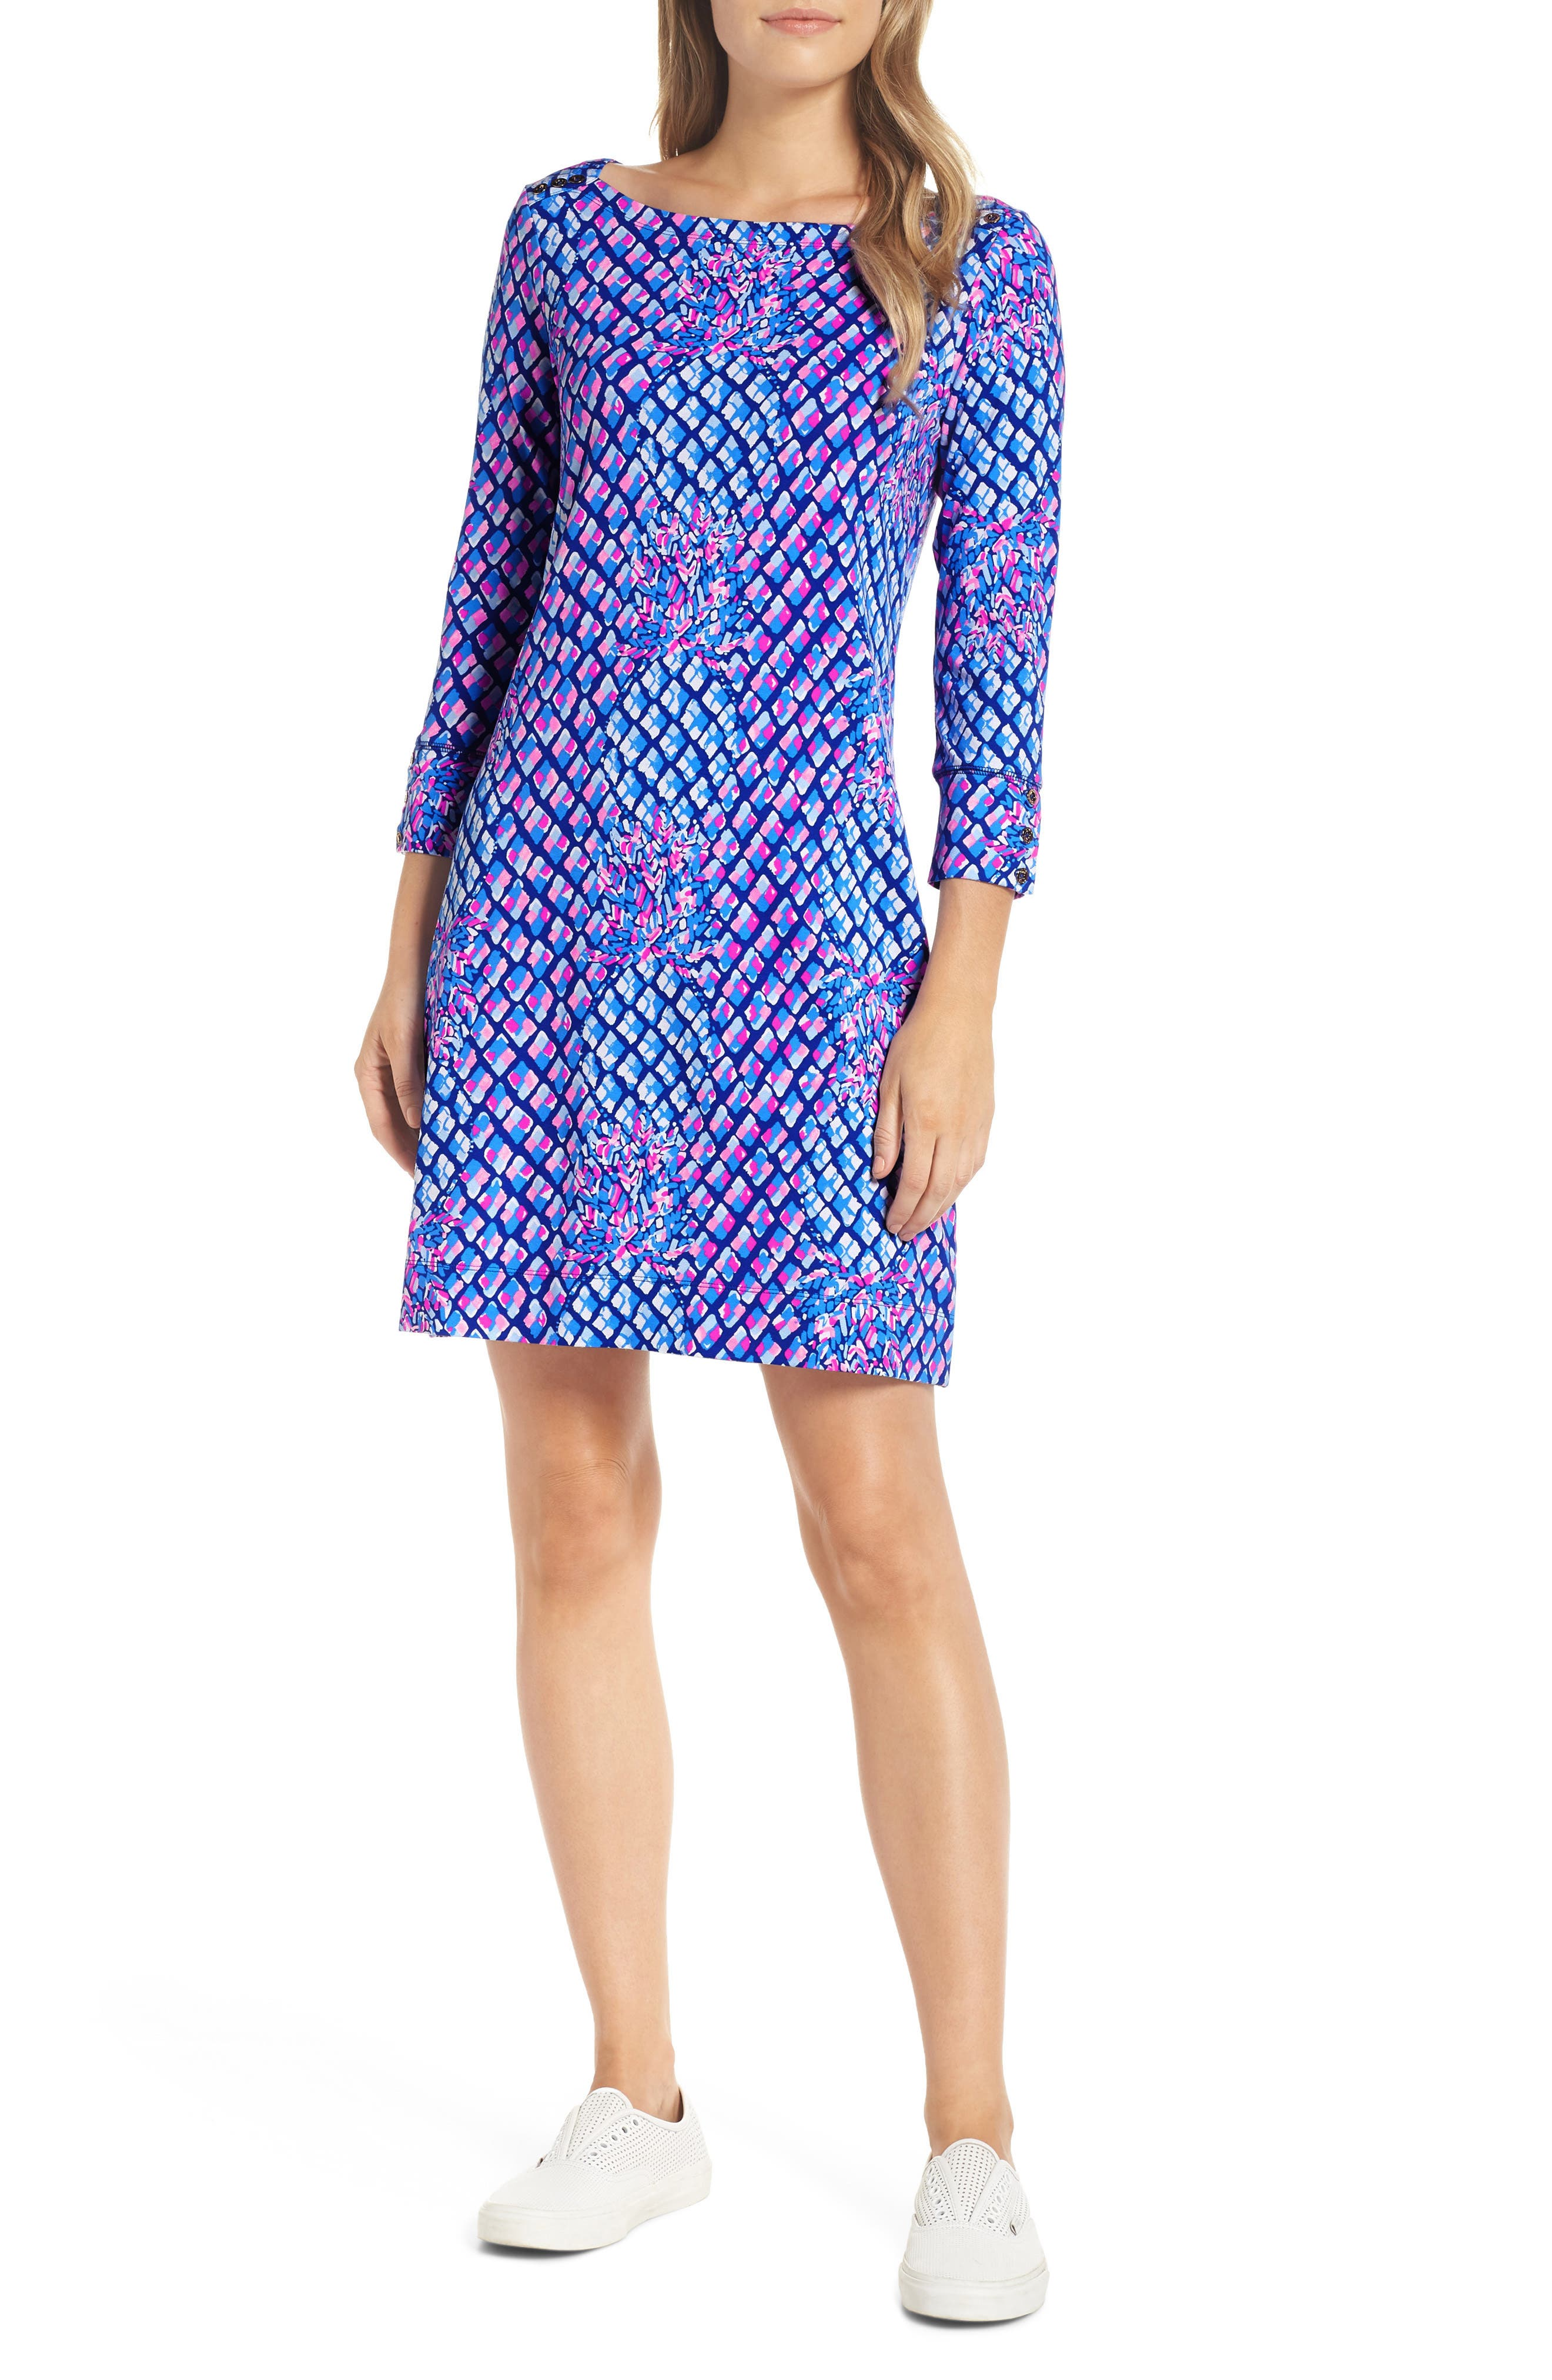 Sophie UPF 50+ Shift Dress, Main, color, ROYAL PURPLE TOE IN